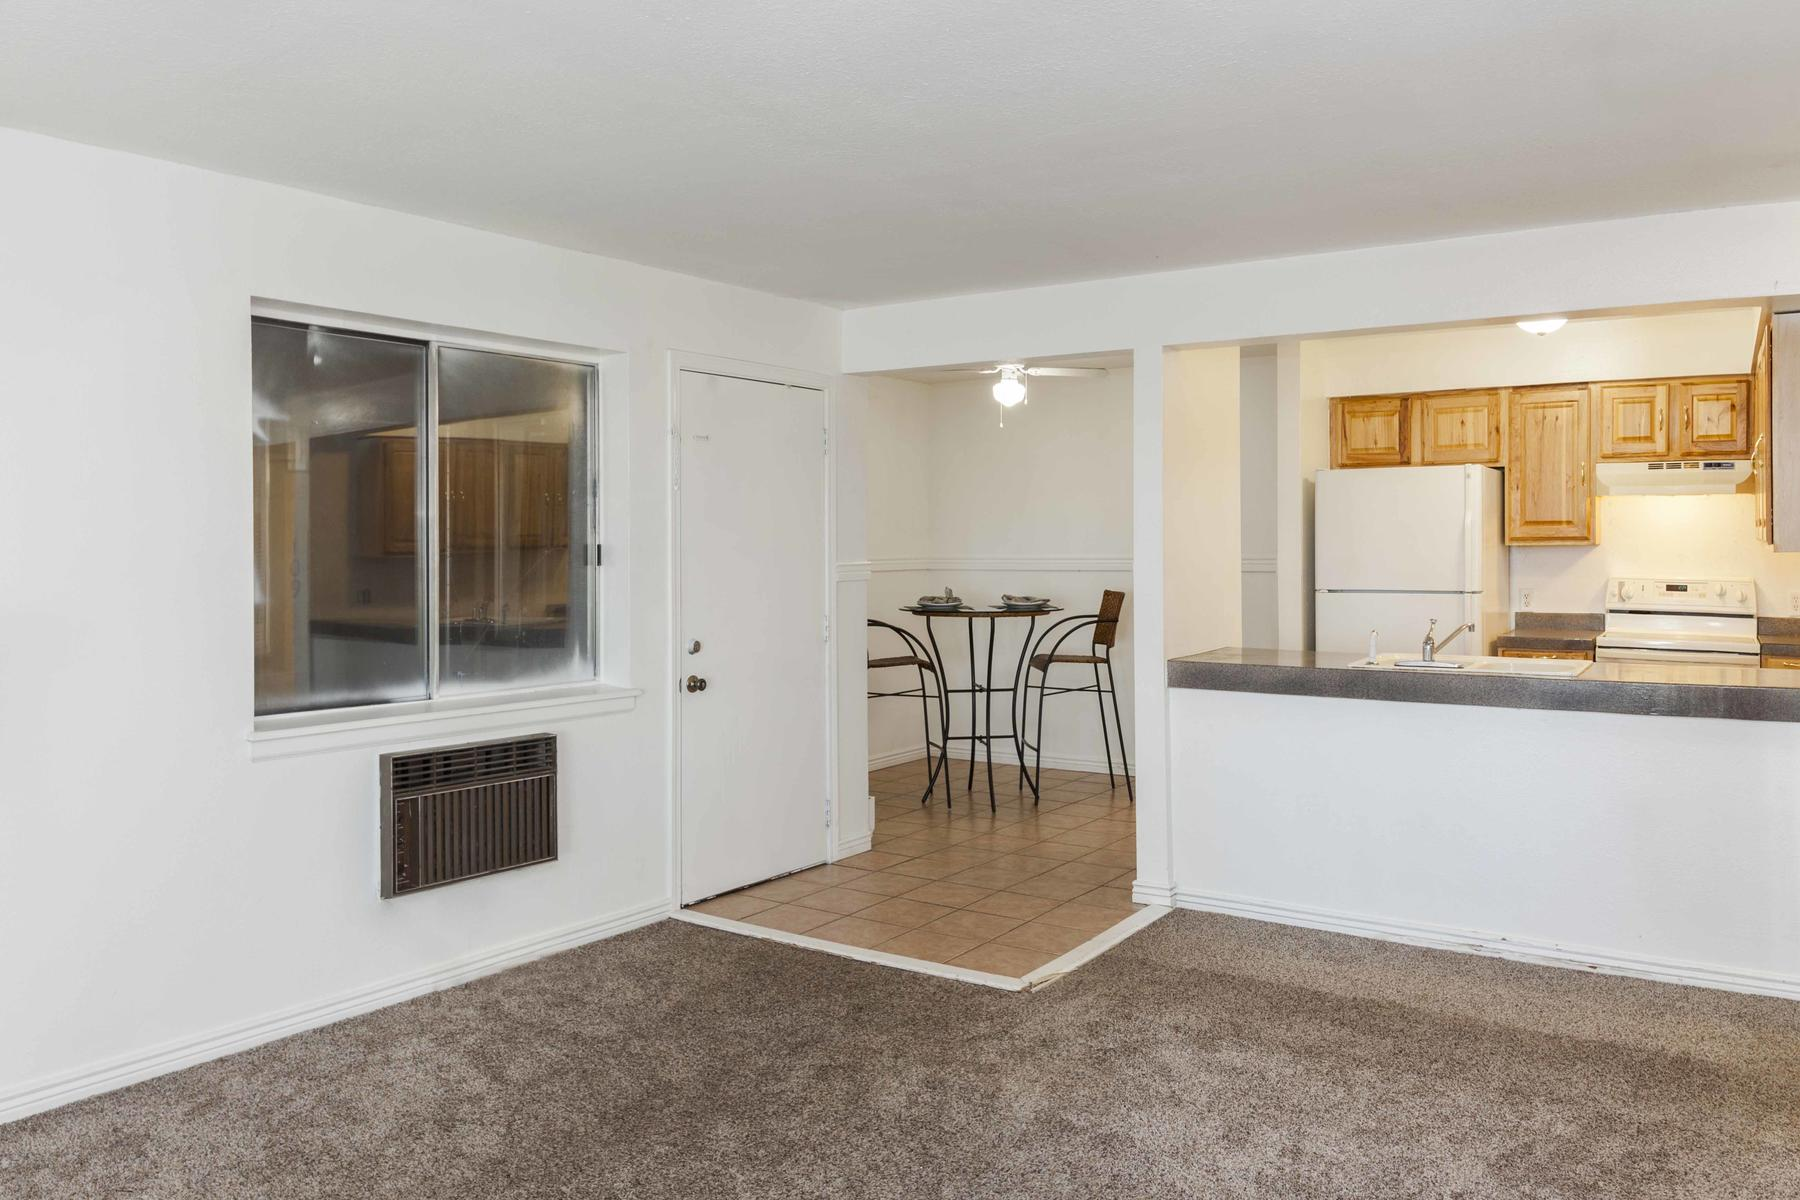 Additional photo for property listing at Adorable Ground Floor Unit In Red Sky Condo Complex 14602 East 2nd Avenue #107C Aurora, Colorado 80011 United States